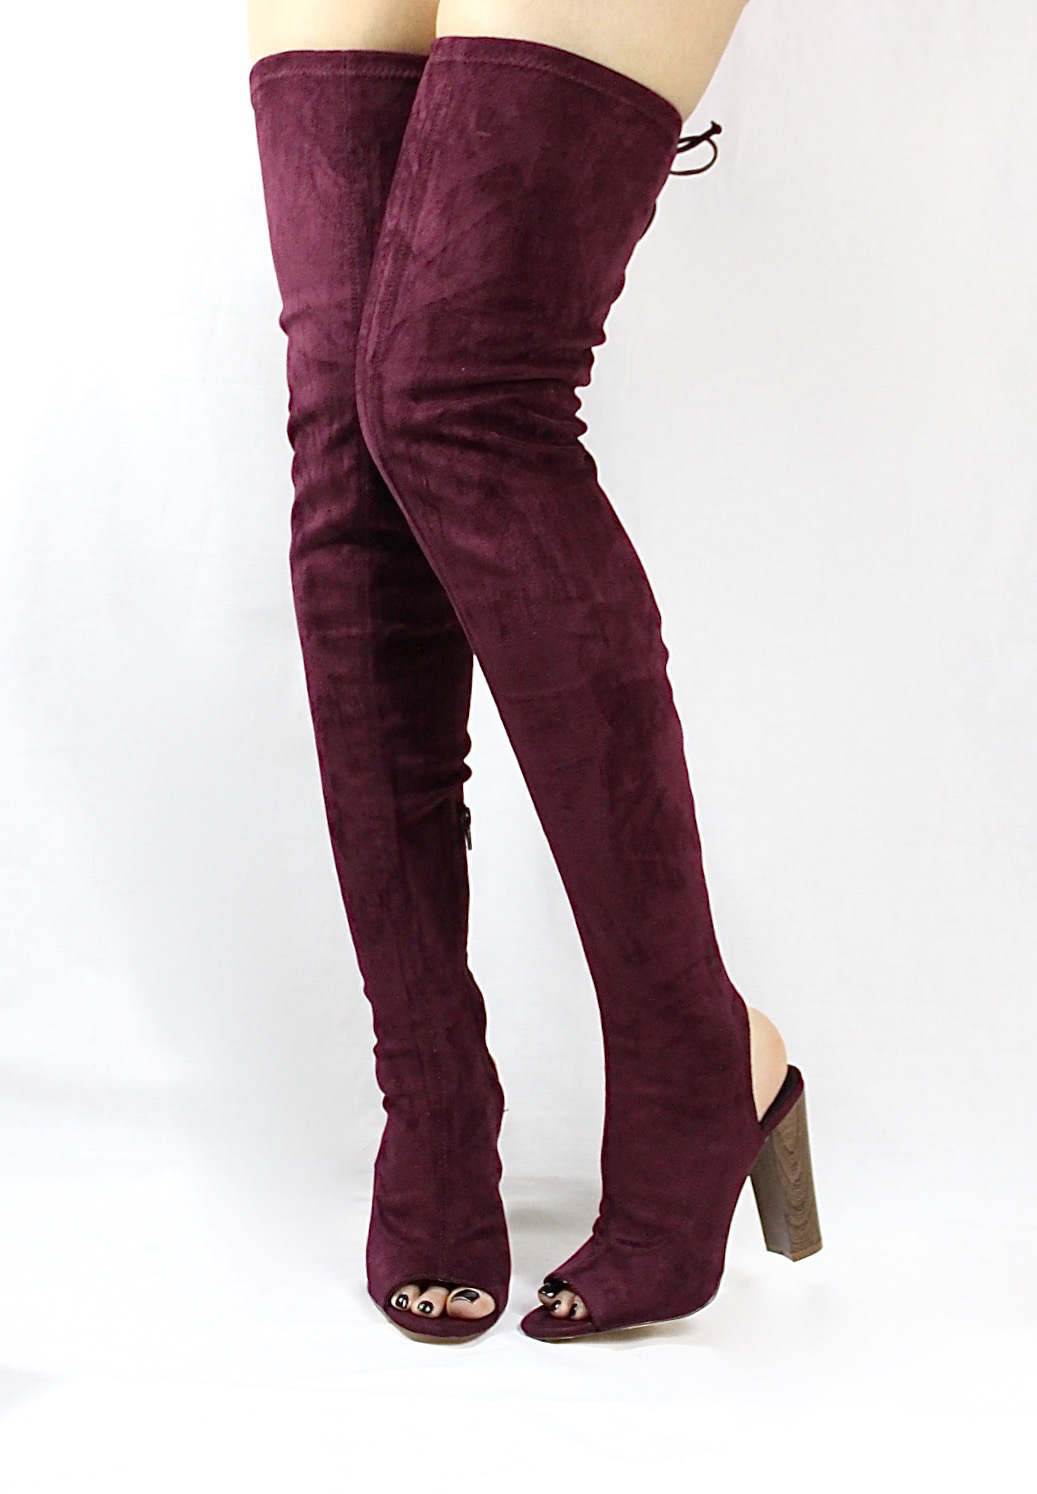 Liliana Sage-44 Plum Over the Knee Thigh High Open Toe Boots-4272